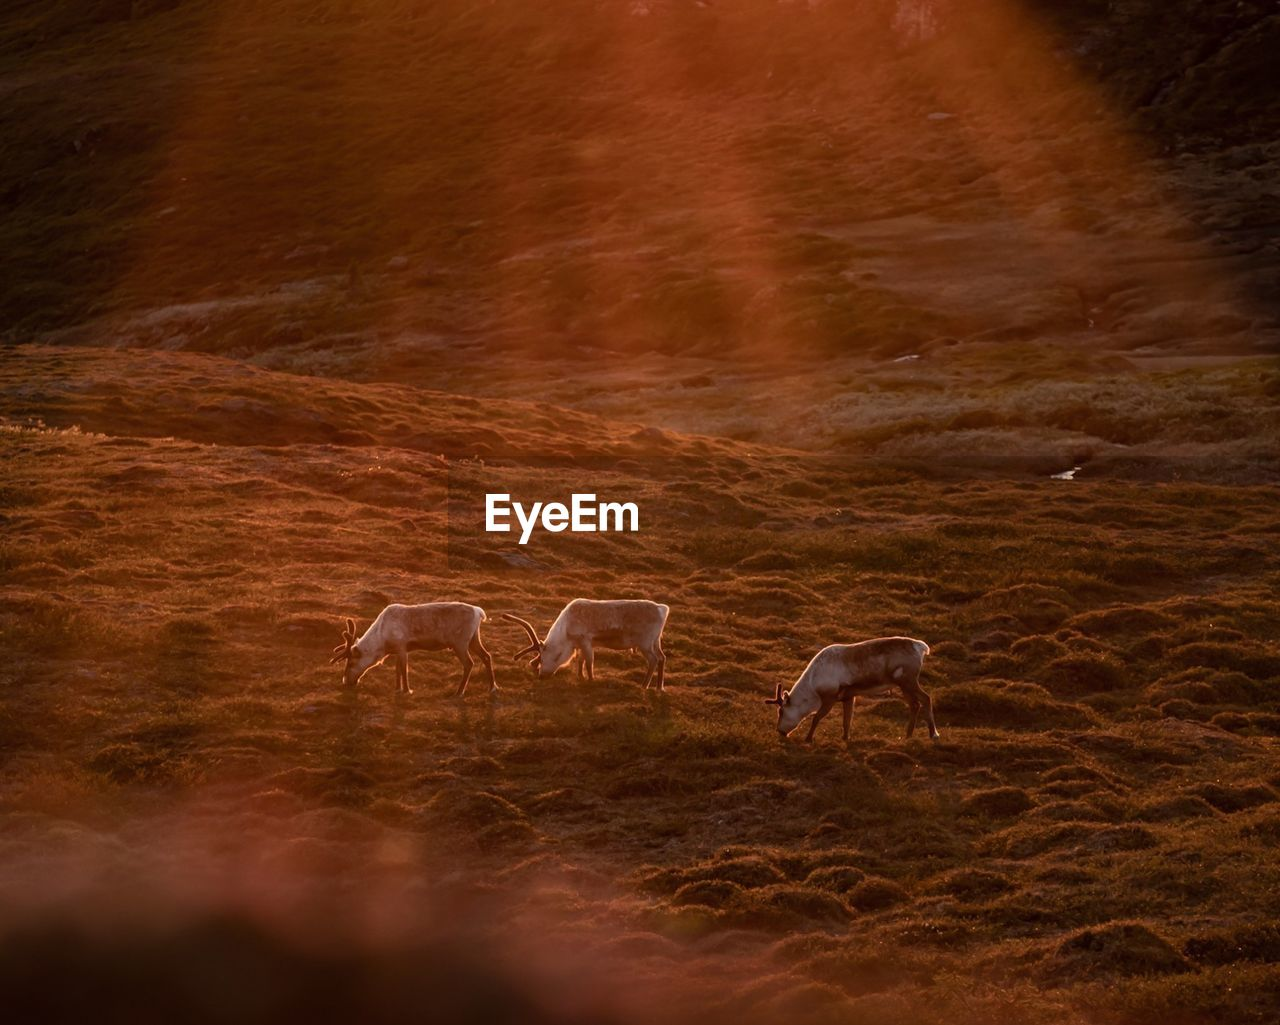 animal, mammal, animal themes, group of animals, vertebrate, animal wildlife, domestic animals, land, livestock, no people, field, nature, animals in the wild, domestic, grazing, beauty in nature, pets, cattle, two animals, sunset, outdoors, herbivorous